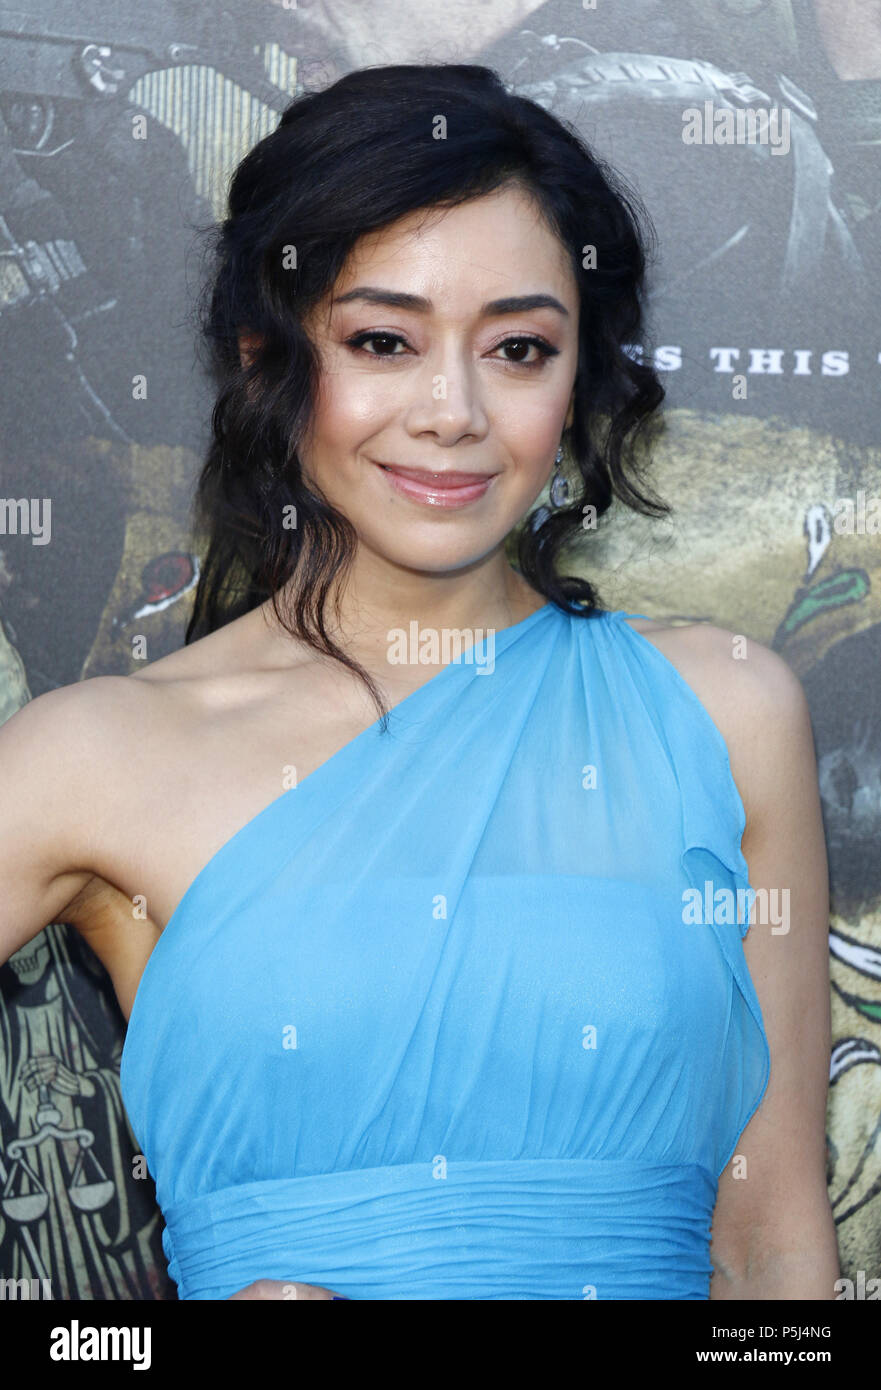 aimee garcia stock photos  u0026 aimee garcia stock images